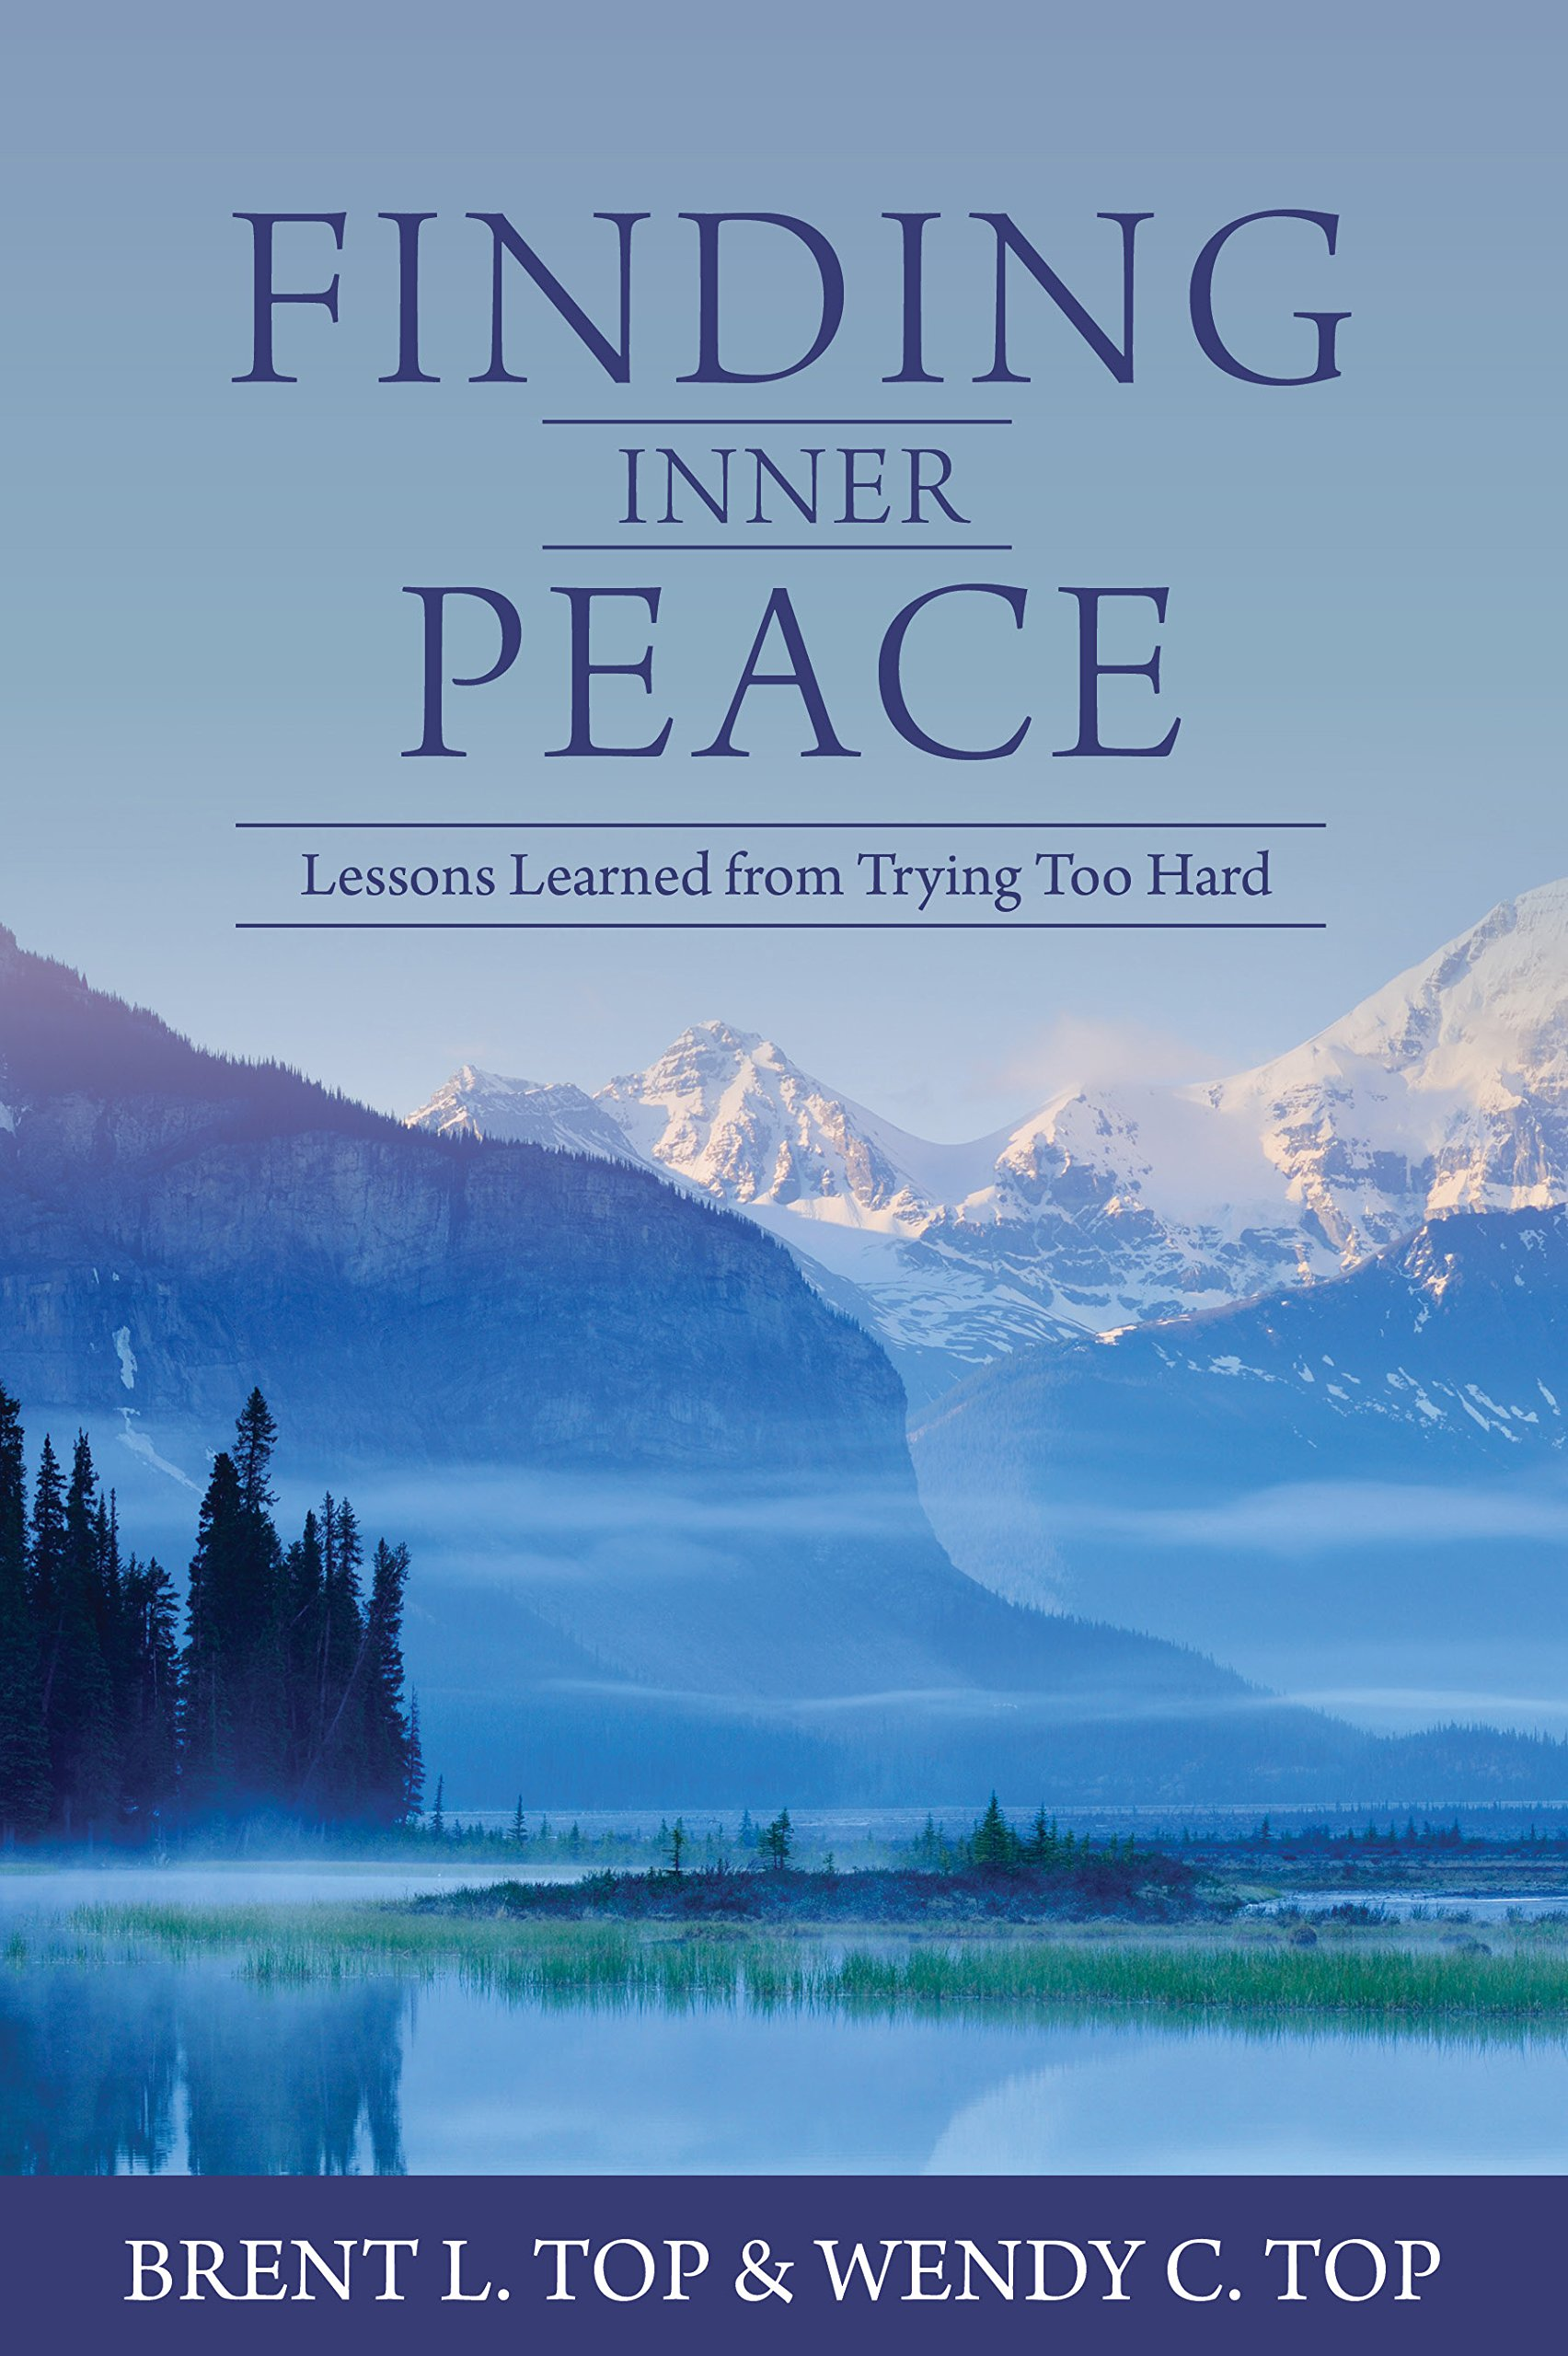 Finding Inner Peace: Lessons Learned from Trying Too Hard